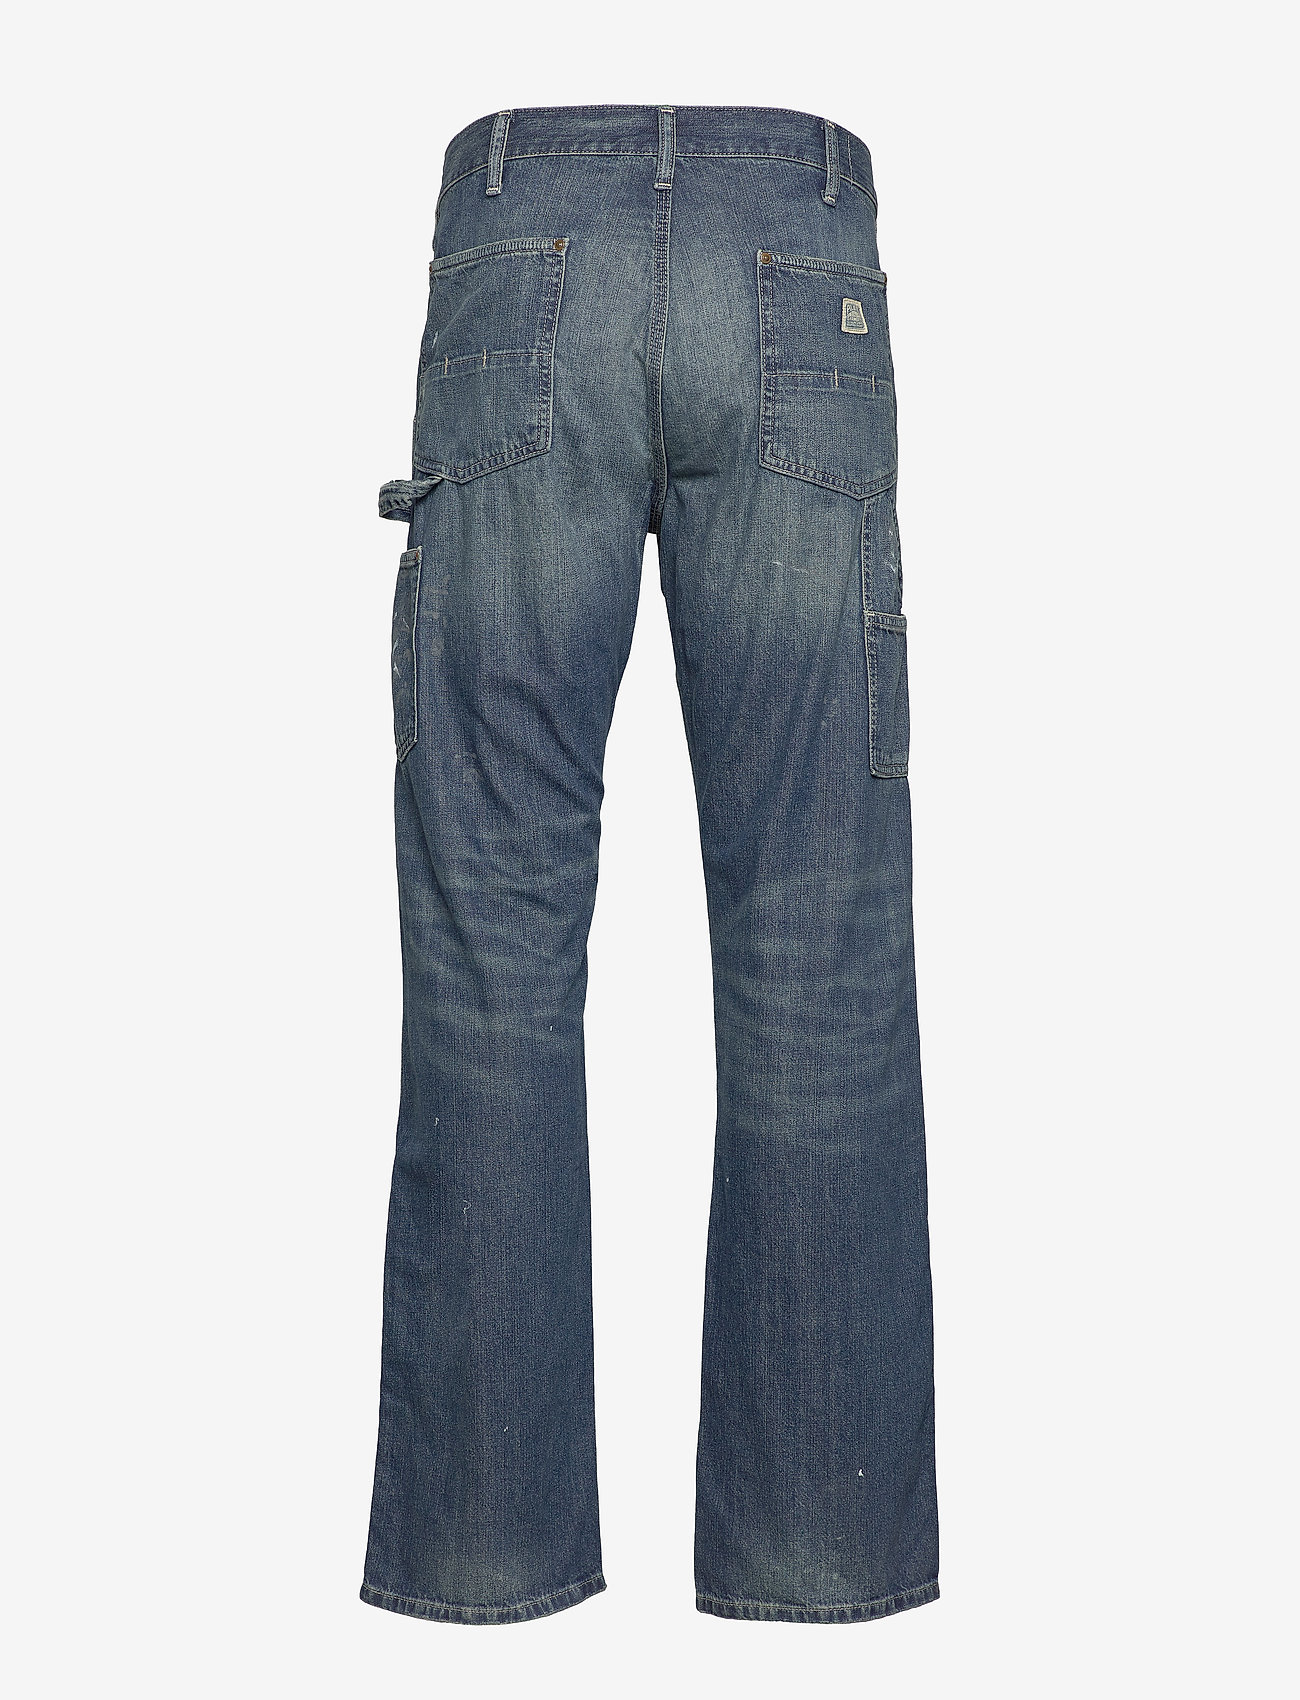 Straight Fit Carpenter Jean (Bowers) - Polo Ralph Lauren owHSWZ